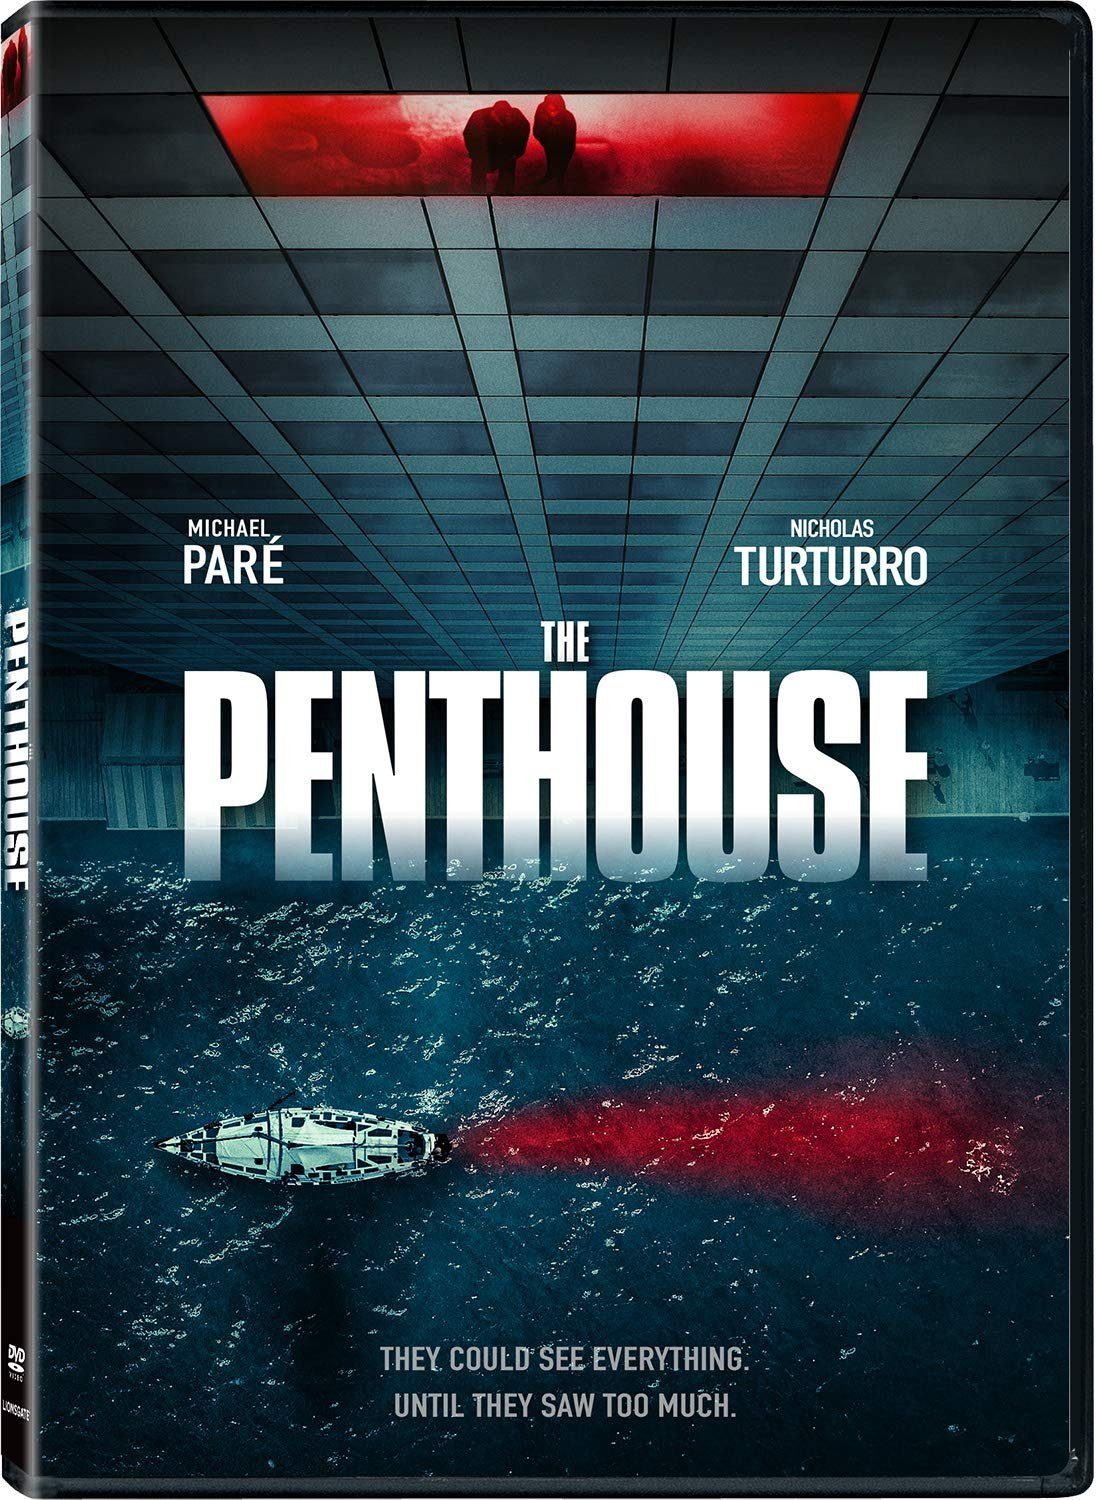 The Penthouse poster image